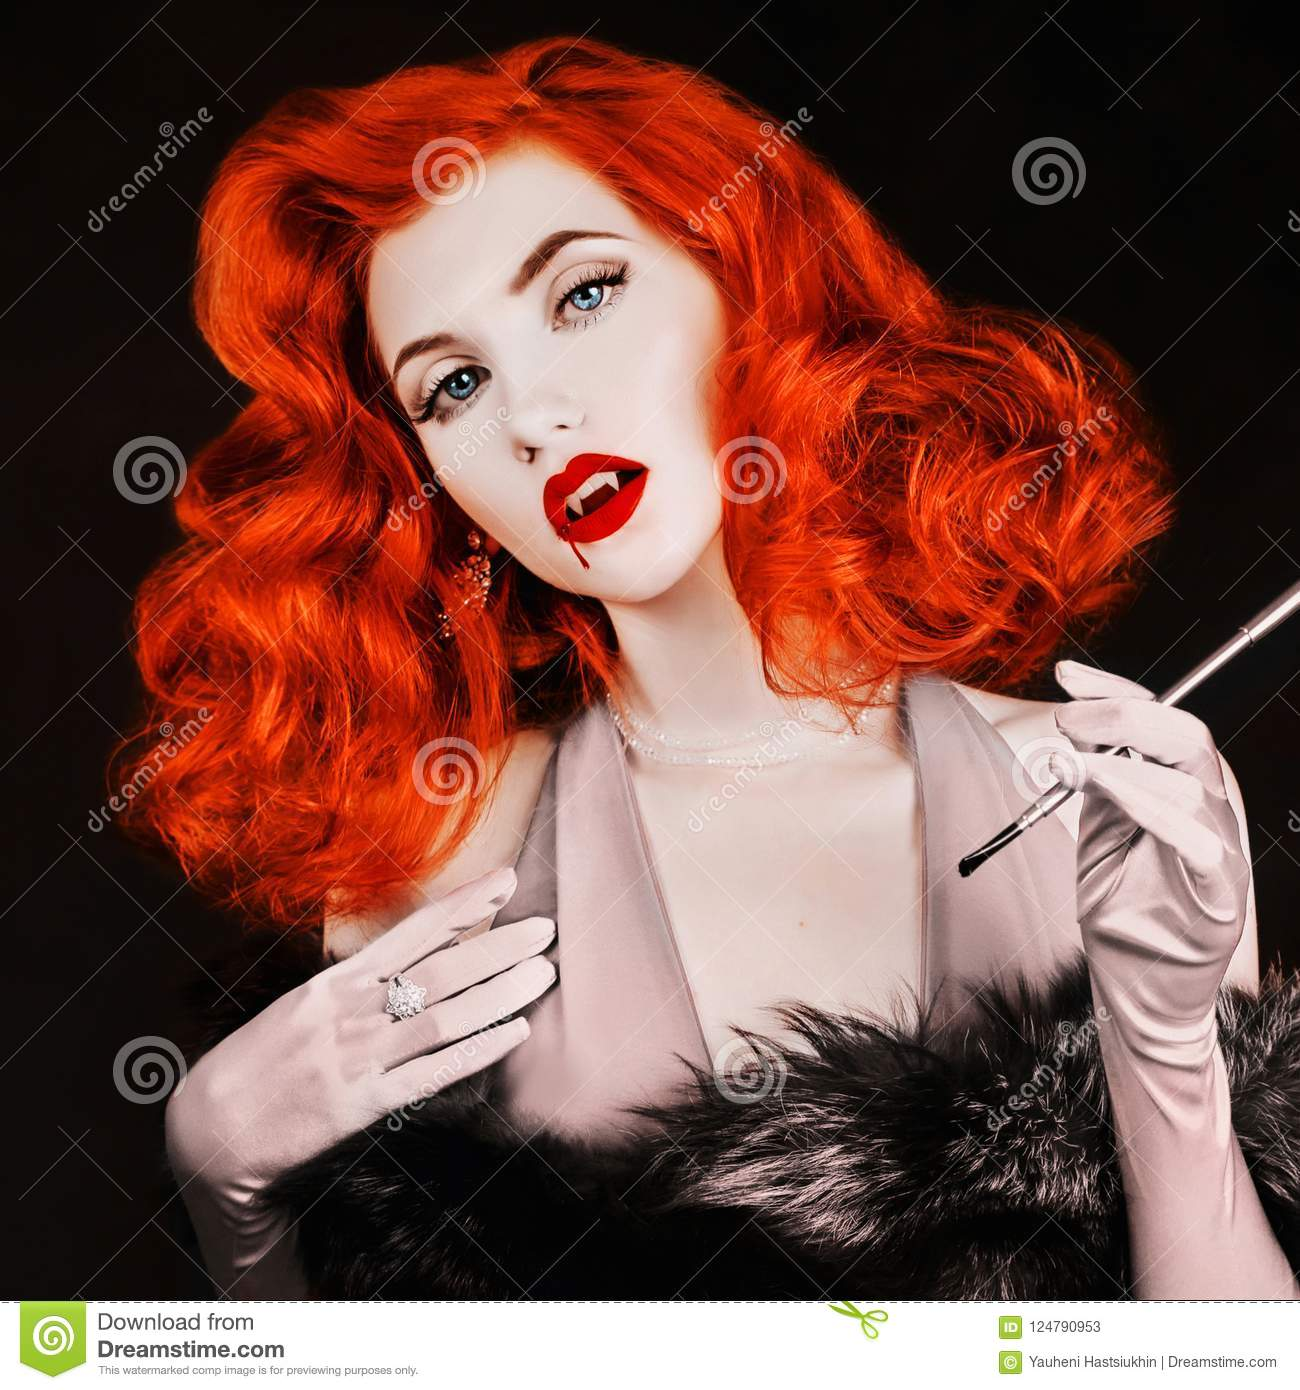 Gothic halloween attire. Vampire with open mouth and fangs. Victorian woman with pale skin on black background. Gothic redhead mod